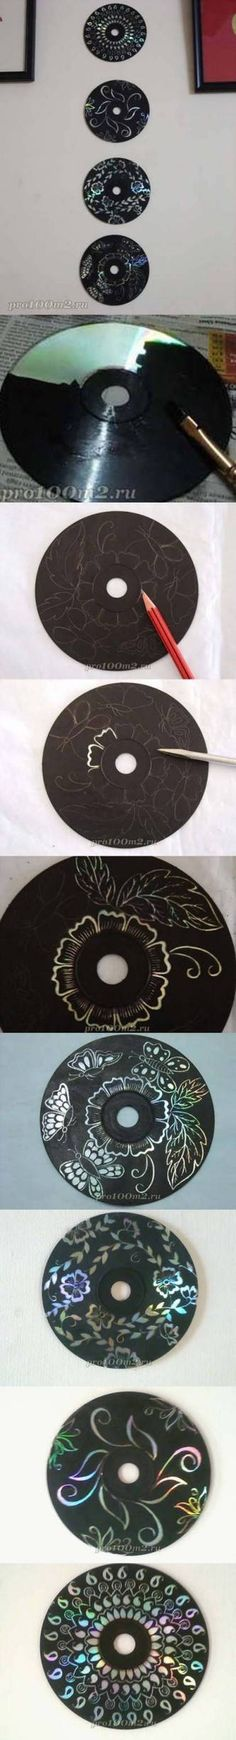 DIY Wall Decoration with CD DIY Projects